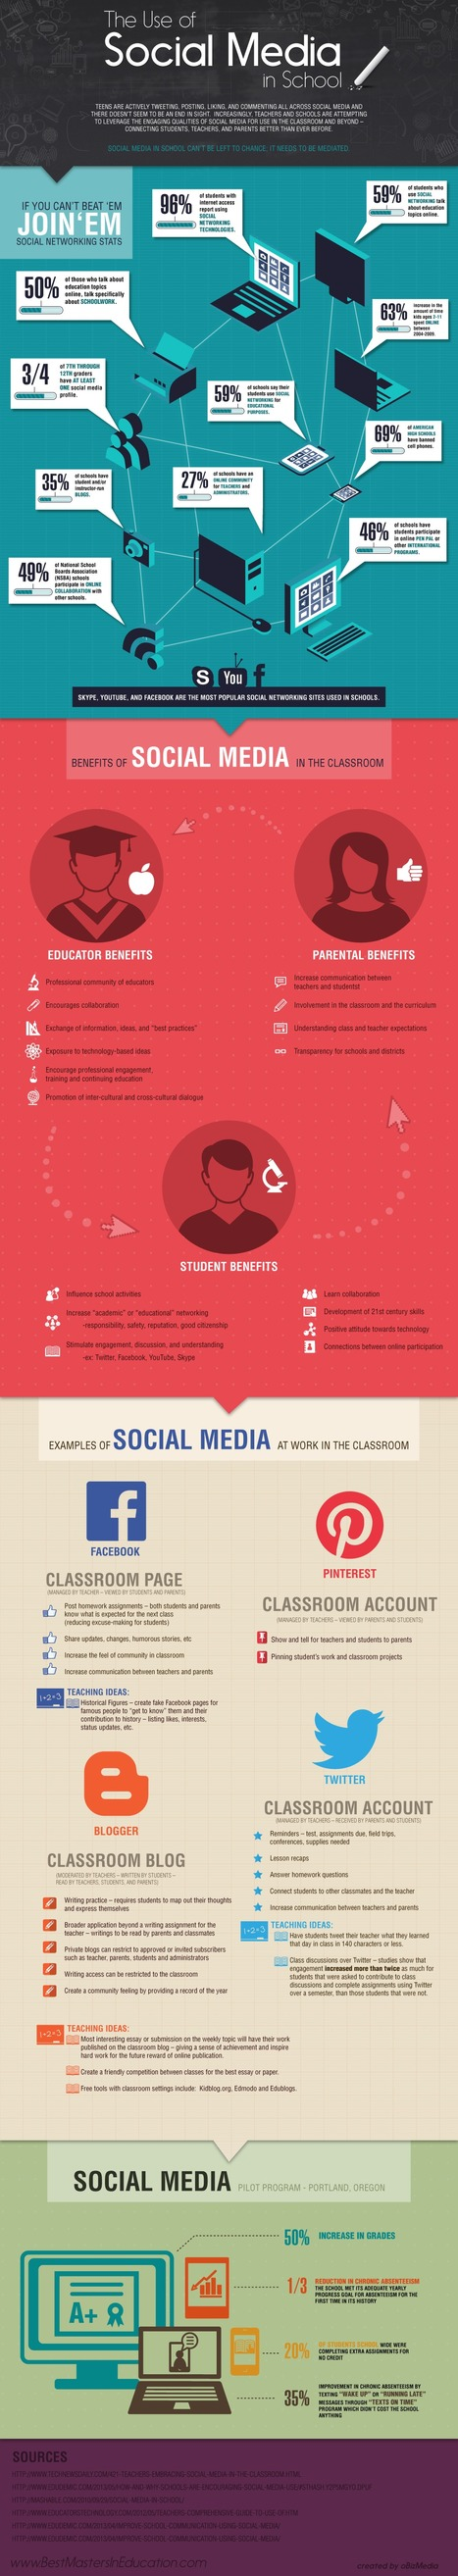 Social Media 101: Is There a Place For Social Media in Classrooms? [Infographic] | Cool School Ideas | Scoop.it